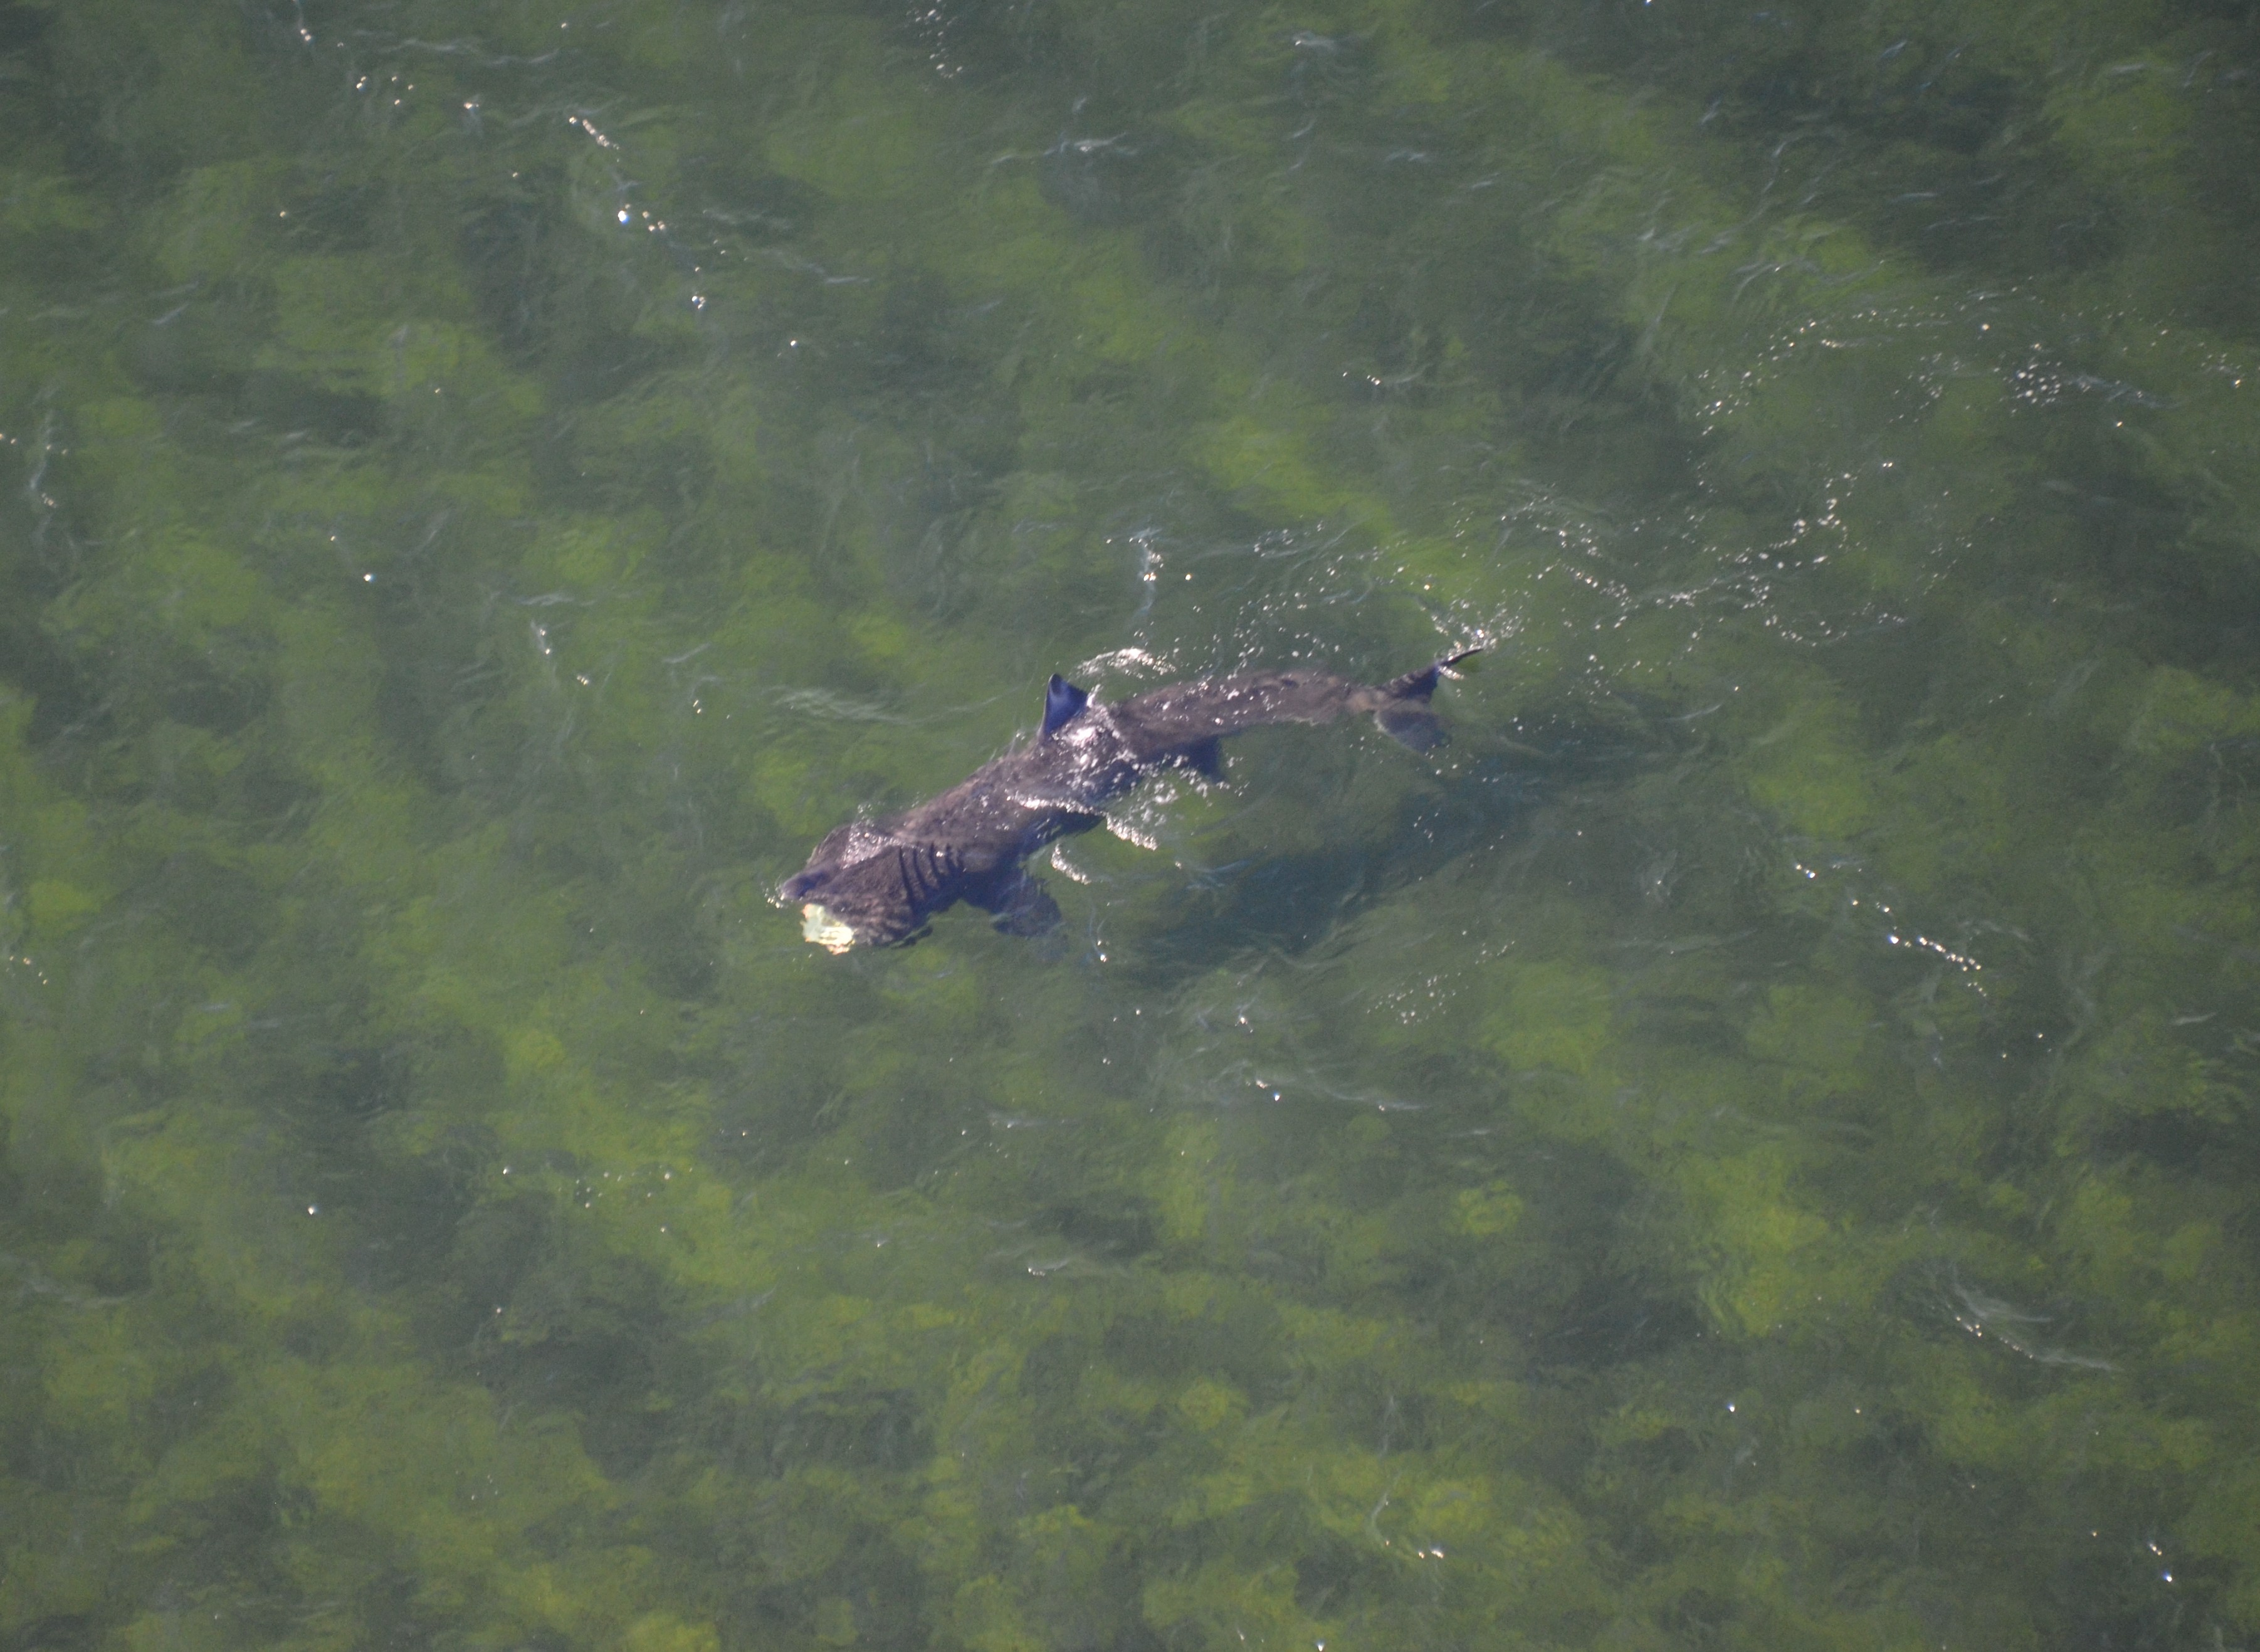 The group of basking sharks were spotted off the Moray coast between Burghead and Findhorn.